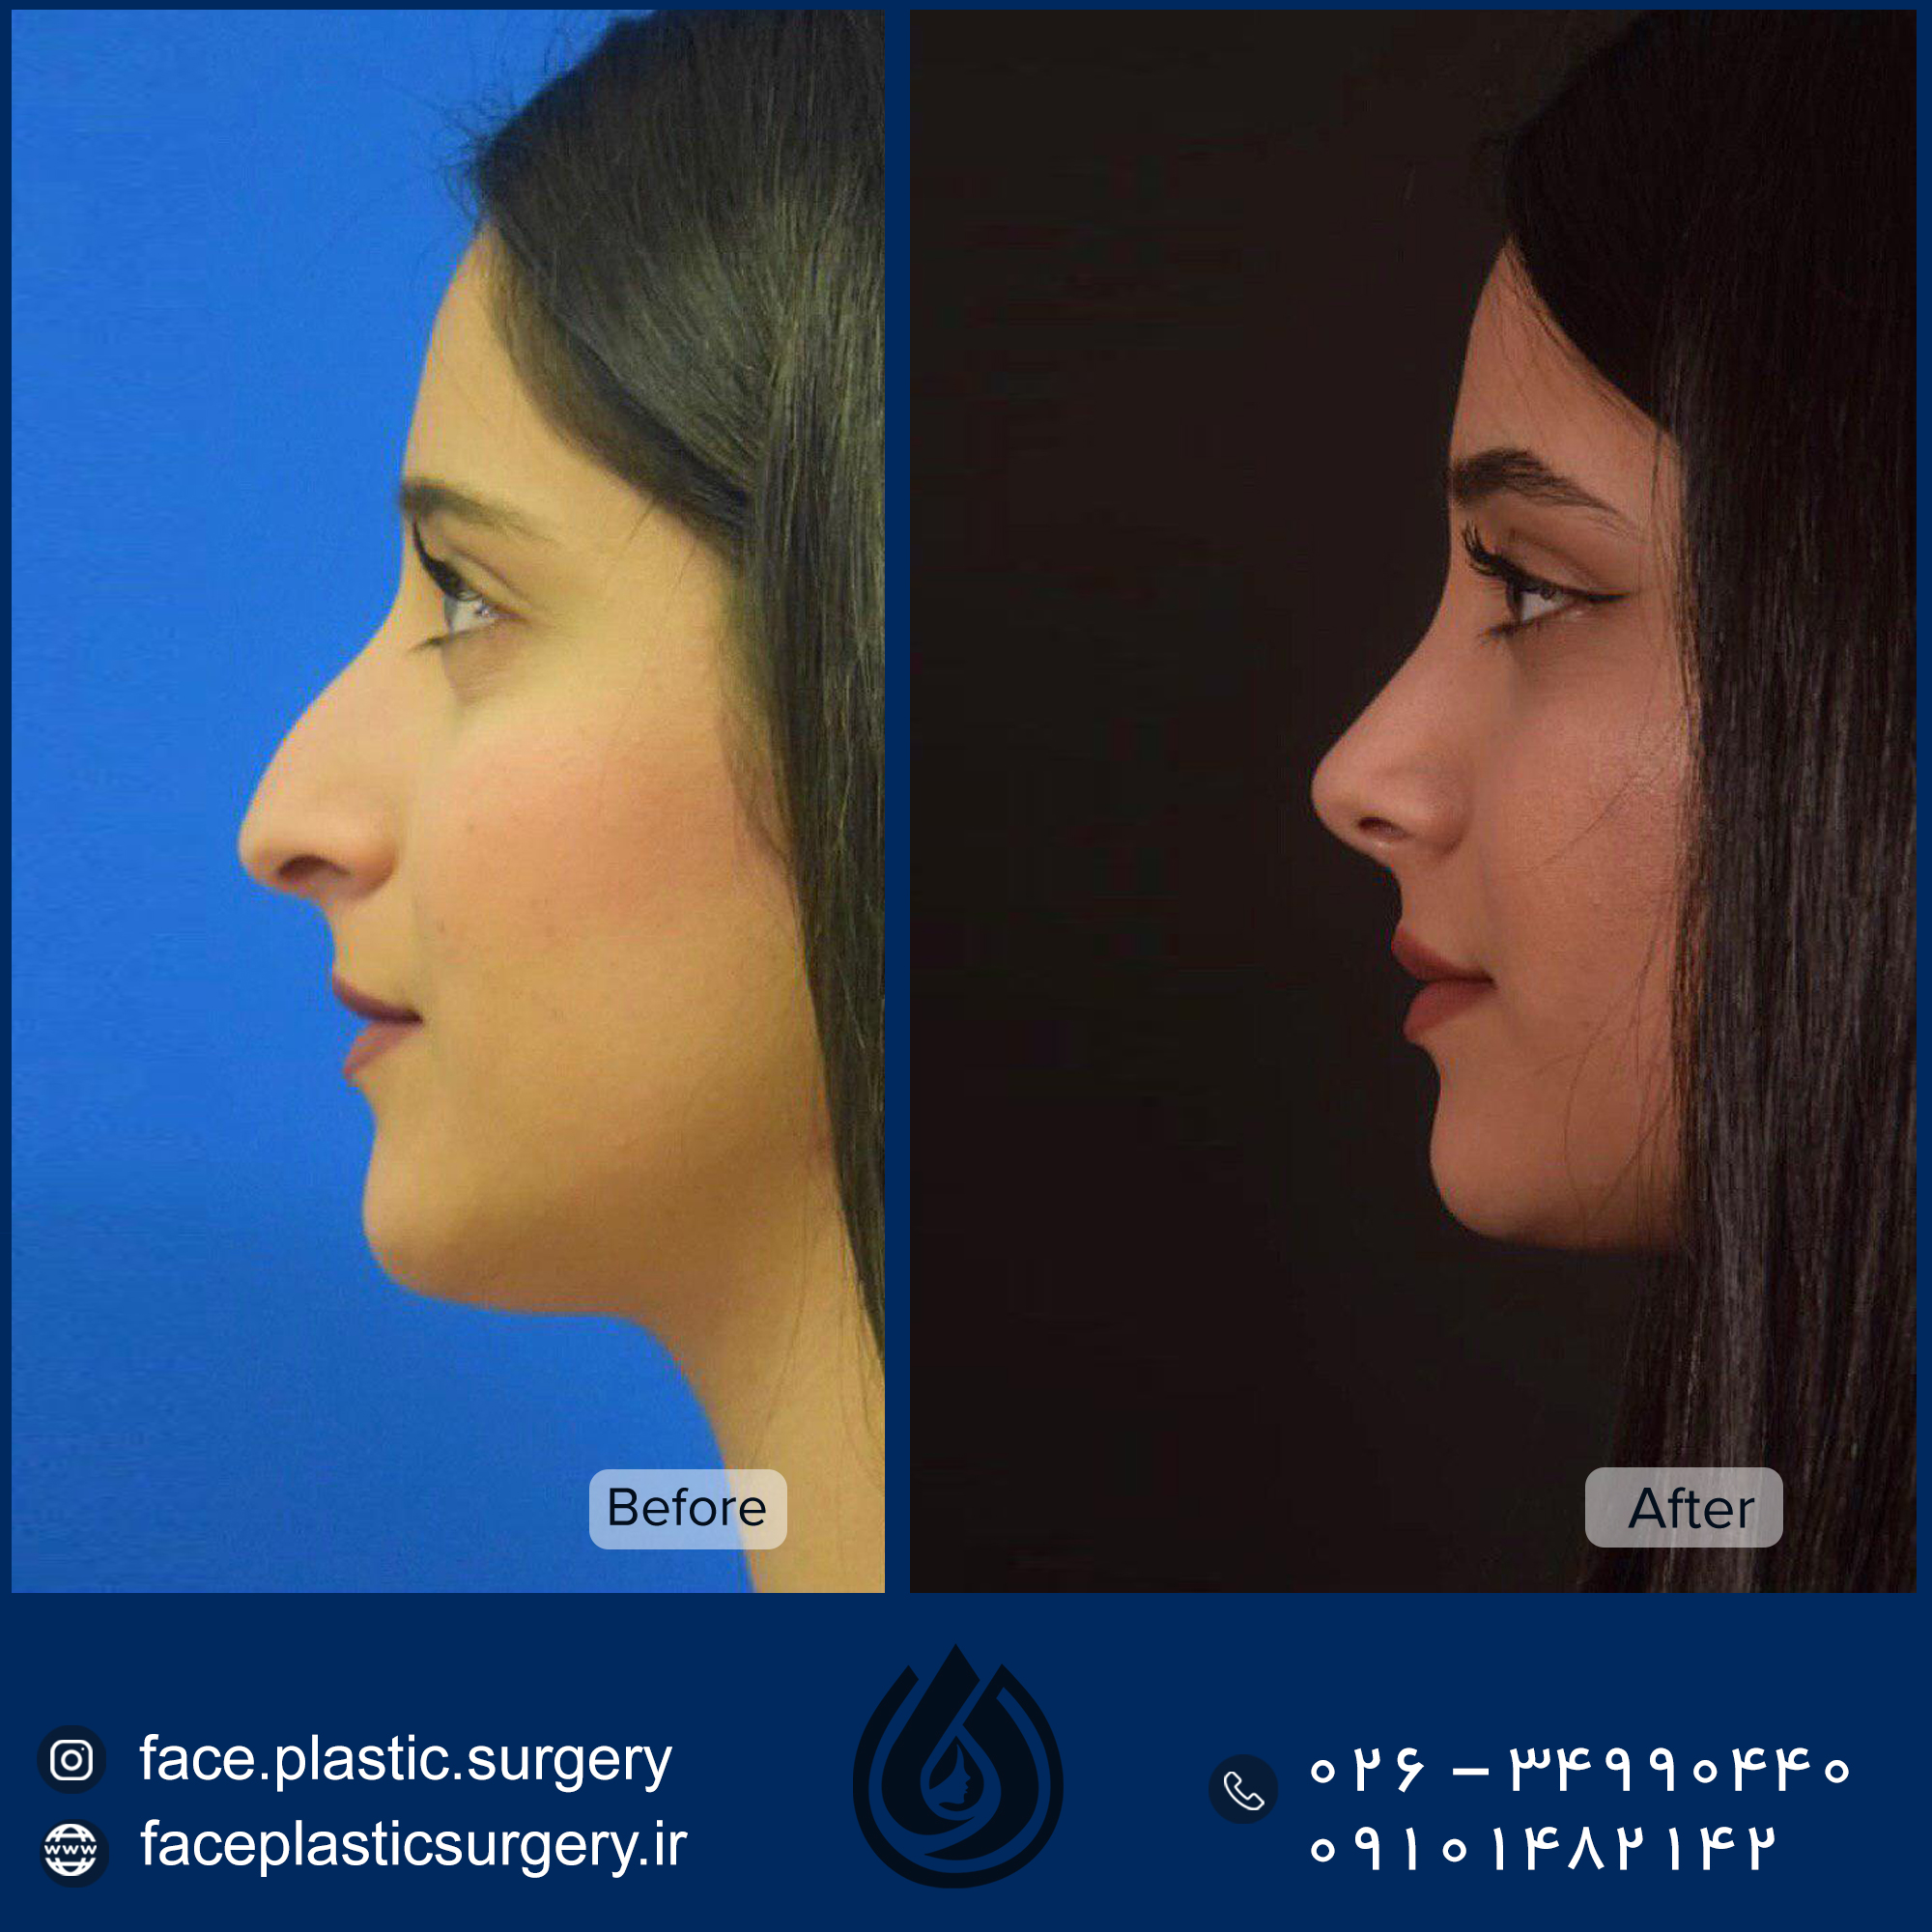 dr-norozi-before-after.jpg99